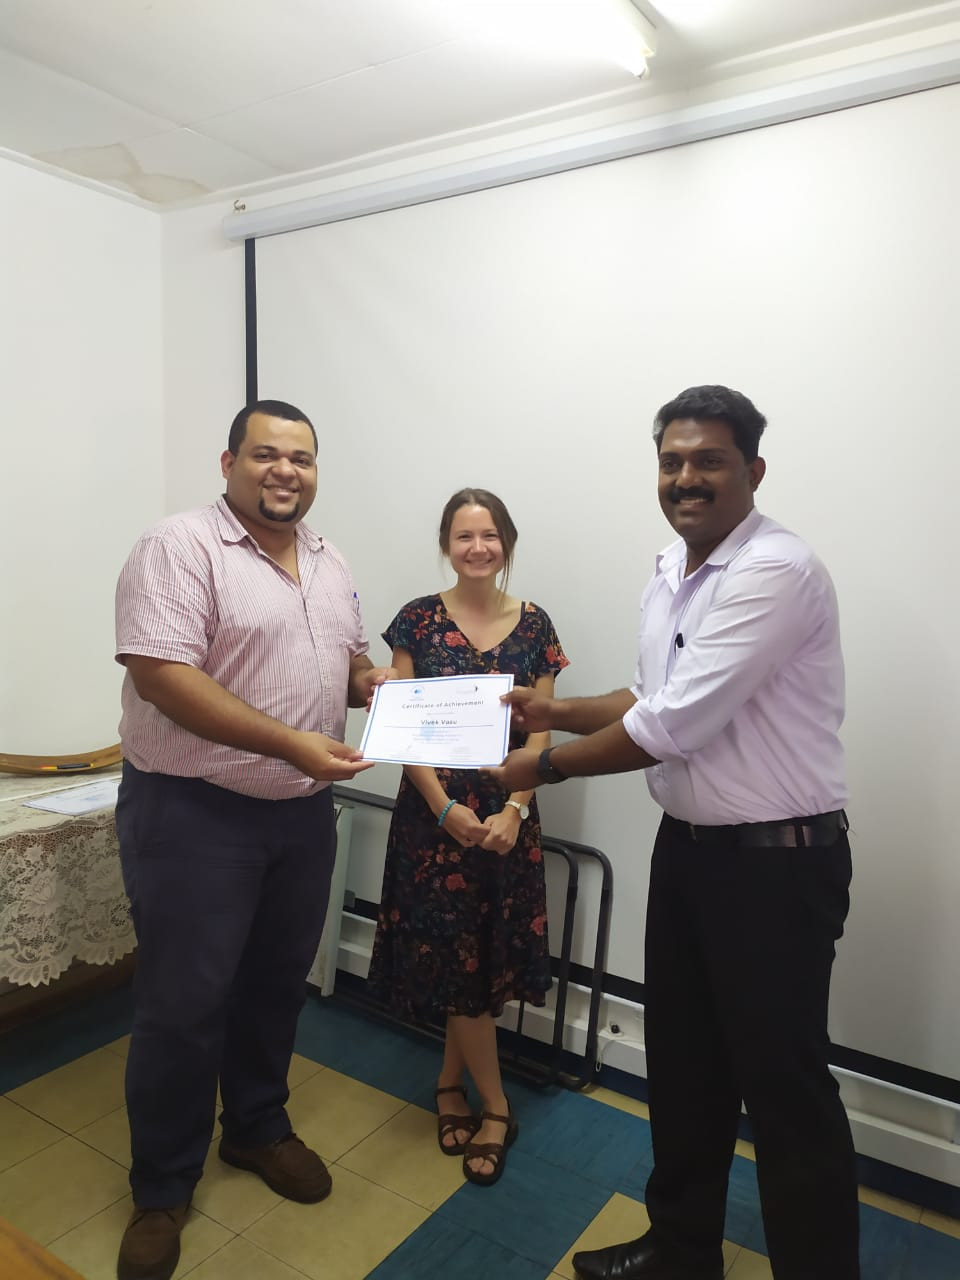 Figure 5; Mr Lesperance and Ms Mullins handing over certificate of achievement to Sir Vivek the fisheries science lecturer at SMA.